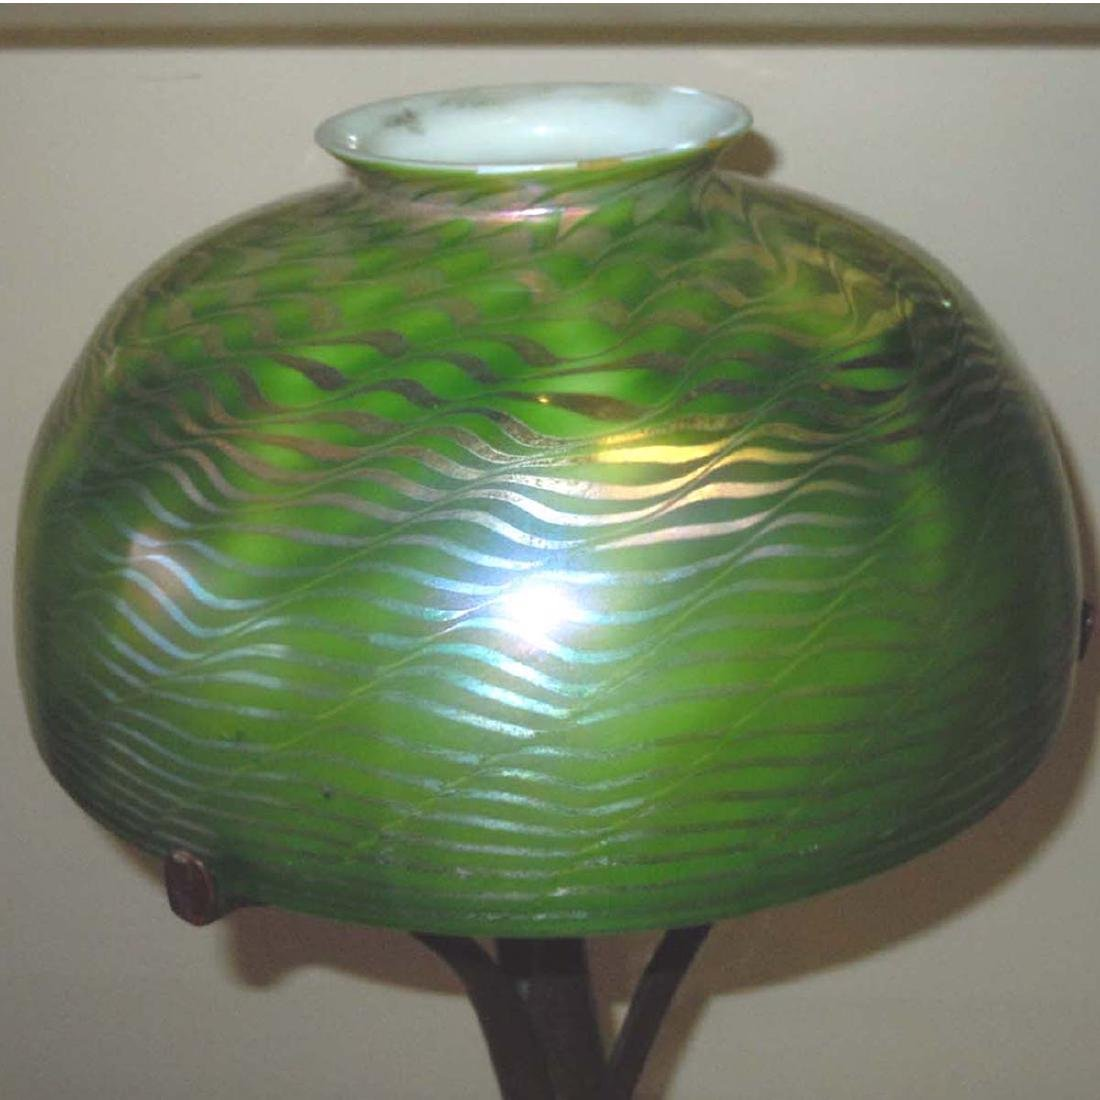 TIFFANY STUDIOS NEW YORK FAVRILE GLASS DAMASCENE LAMP, - 5